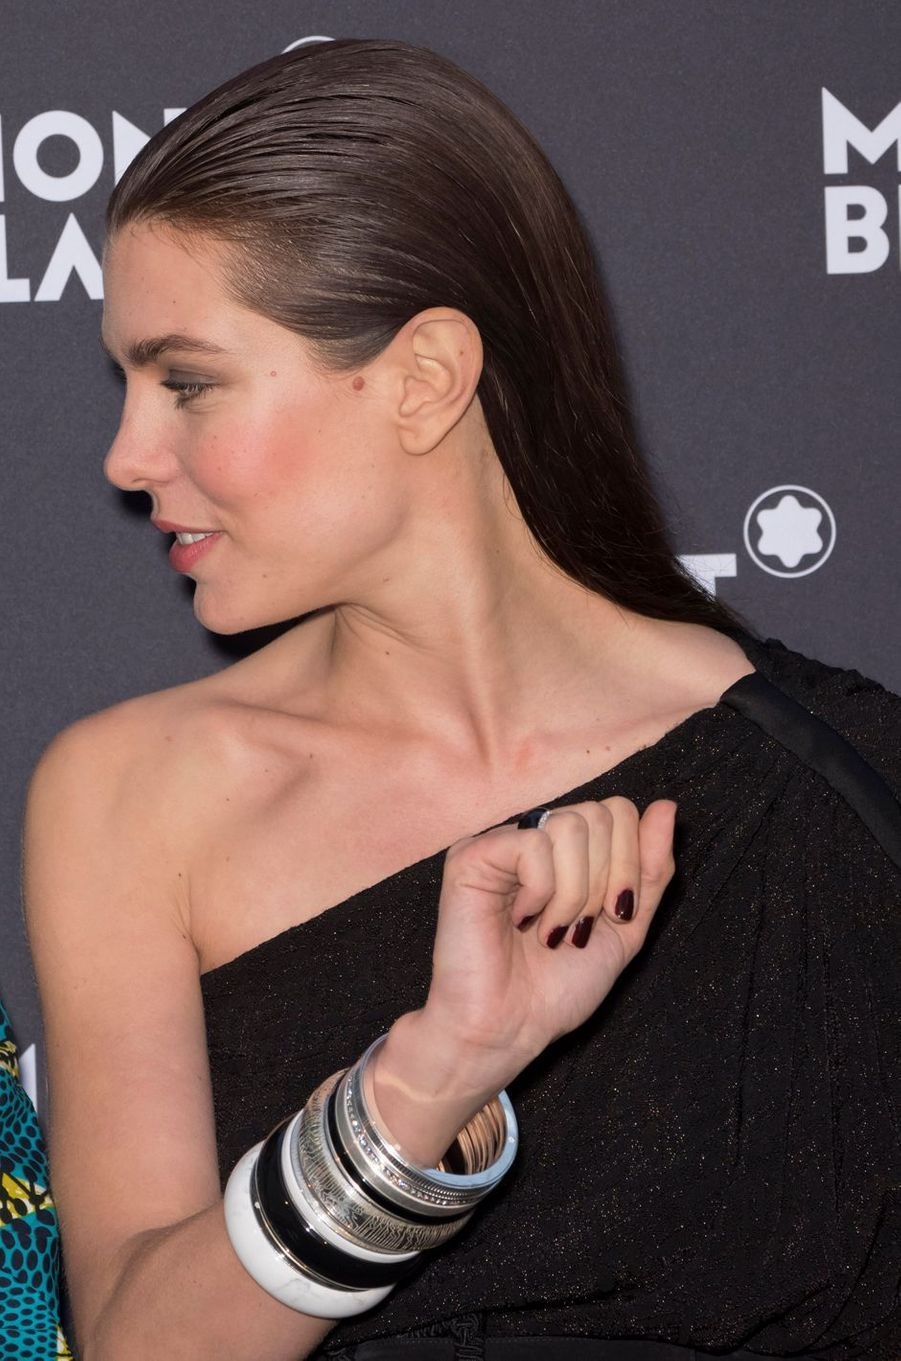 Charlotte Casiraghi arbore des bijoux de sa collection Montblanc, à Cannes le 16 mai 2018